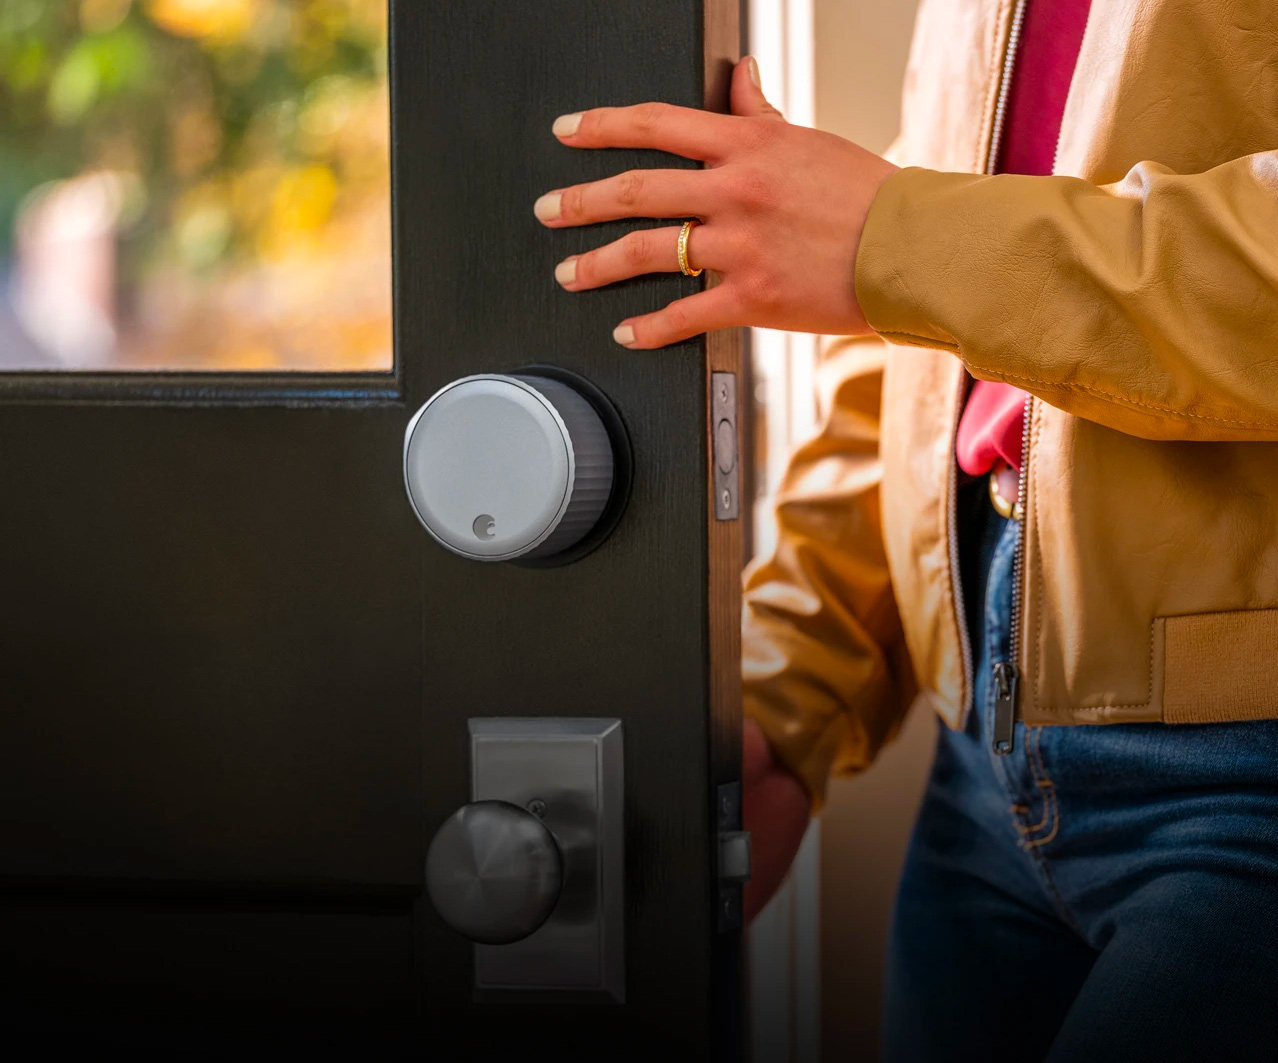 Replace Your Outdated Deadbolt with the Wi-Fi Smart Lock From August at werd.com